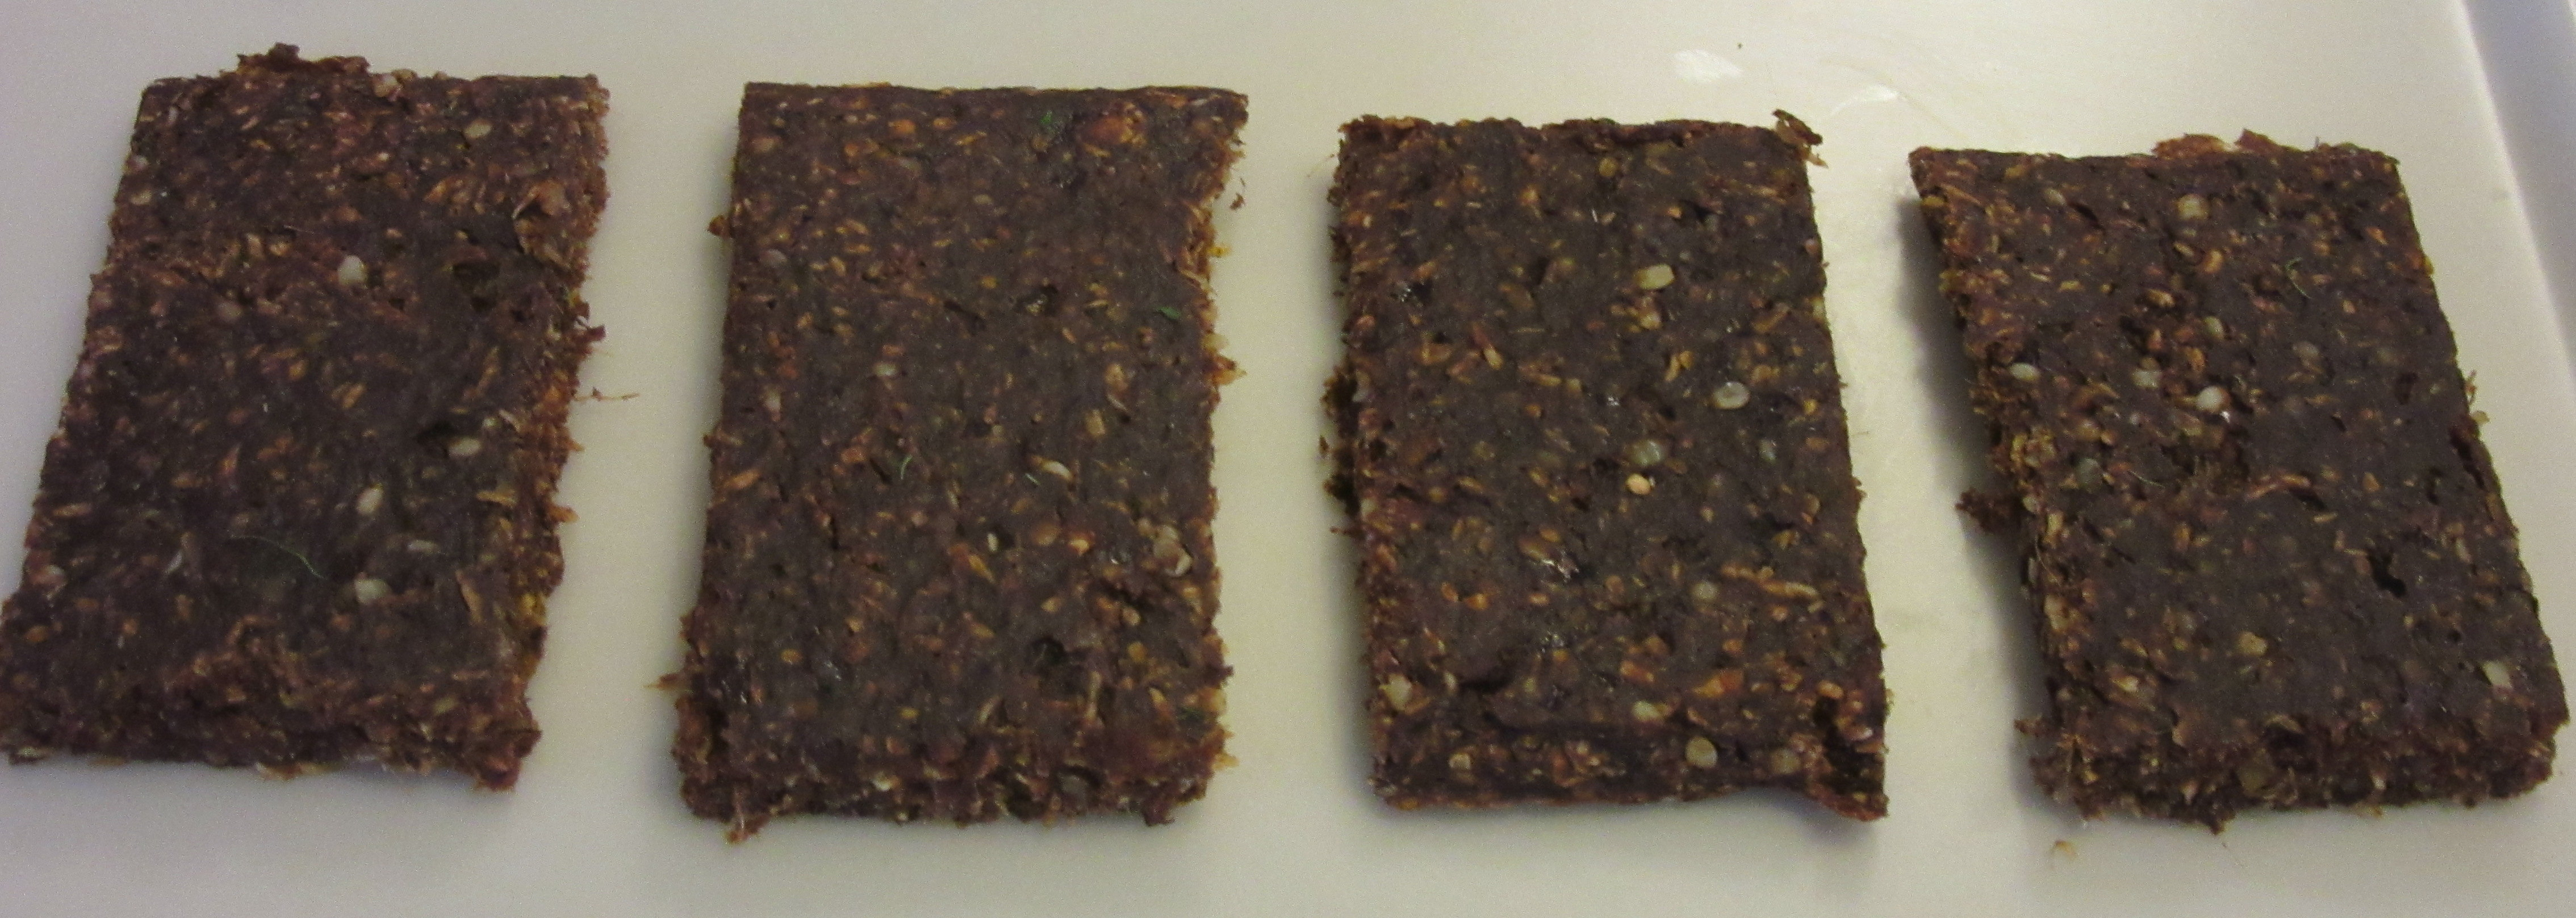 Dehydrated bars in a tray.